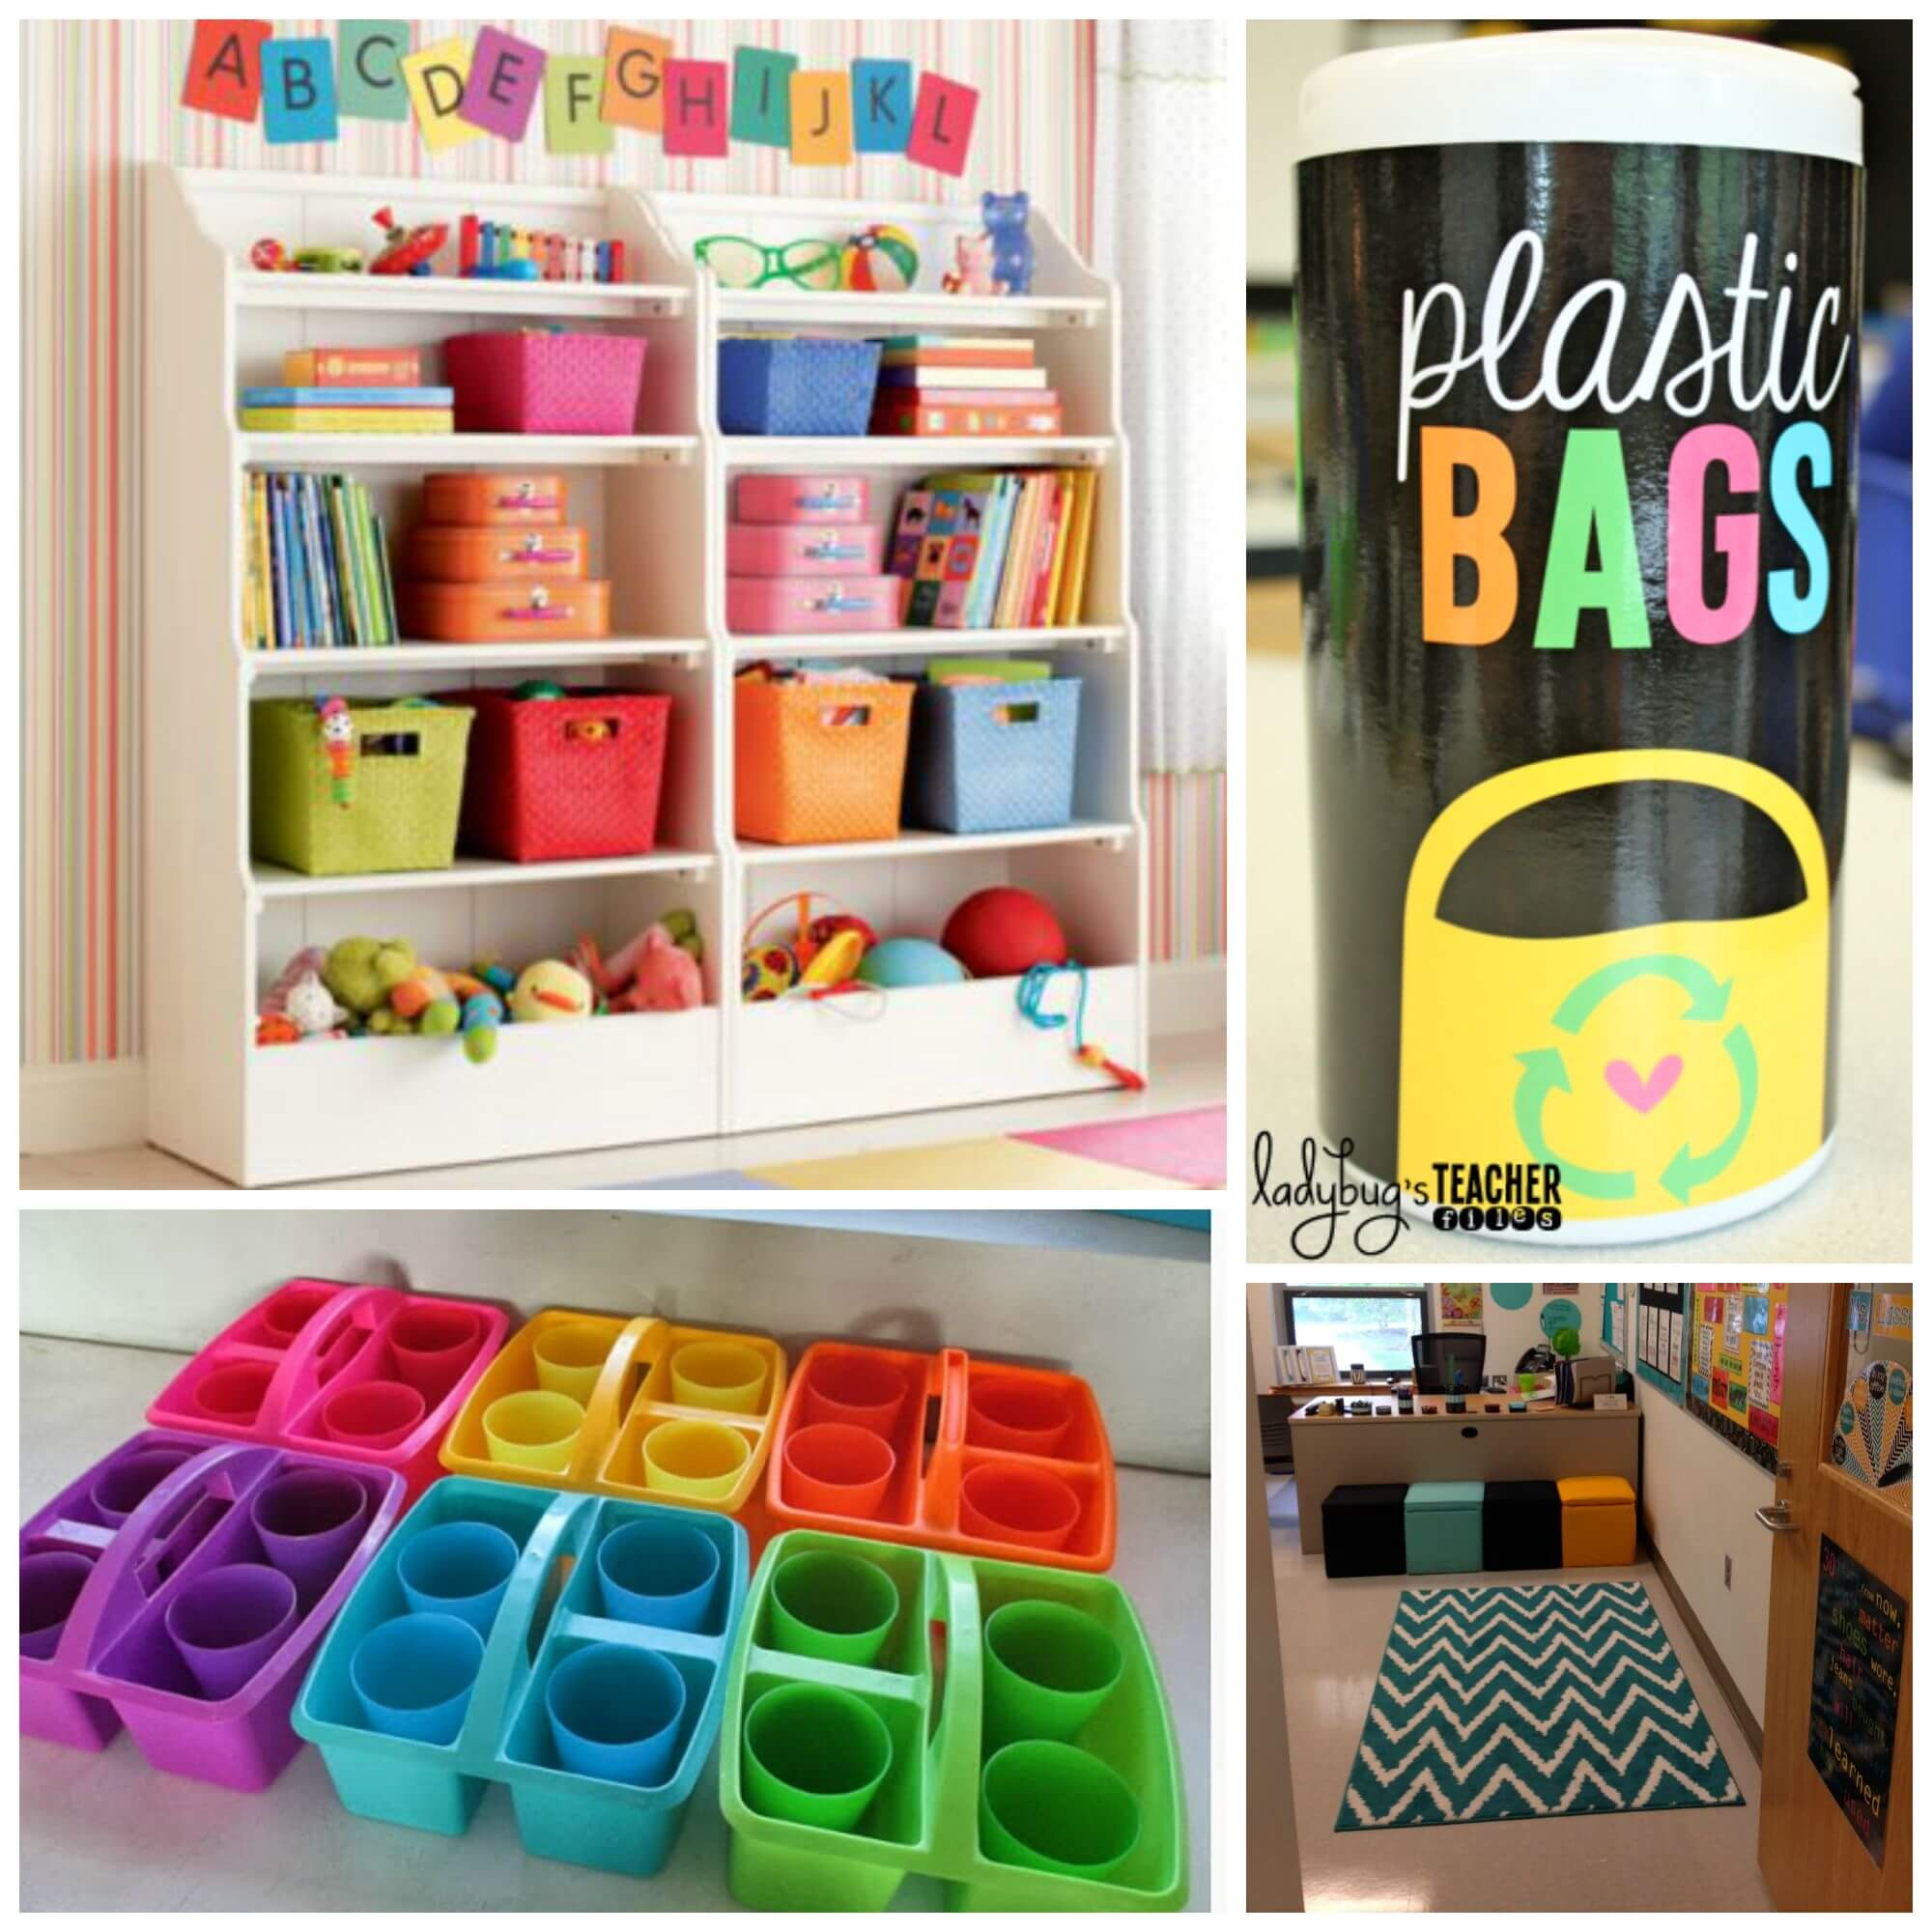 Classroom Decoration Ideas For Primary School : Inspiring classroom decoration ideas playdough to plato